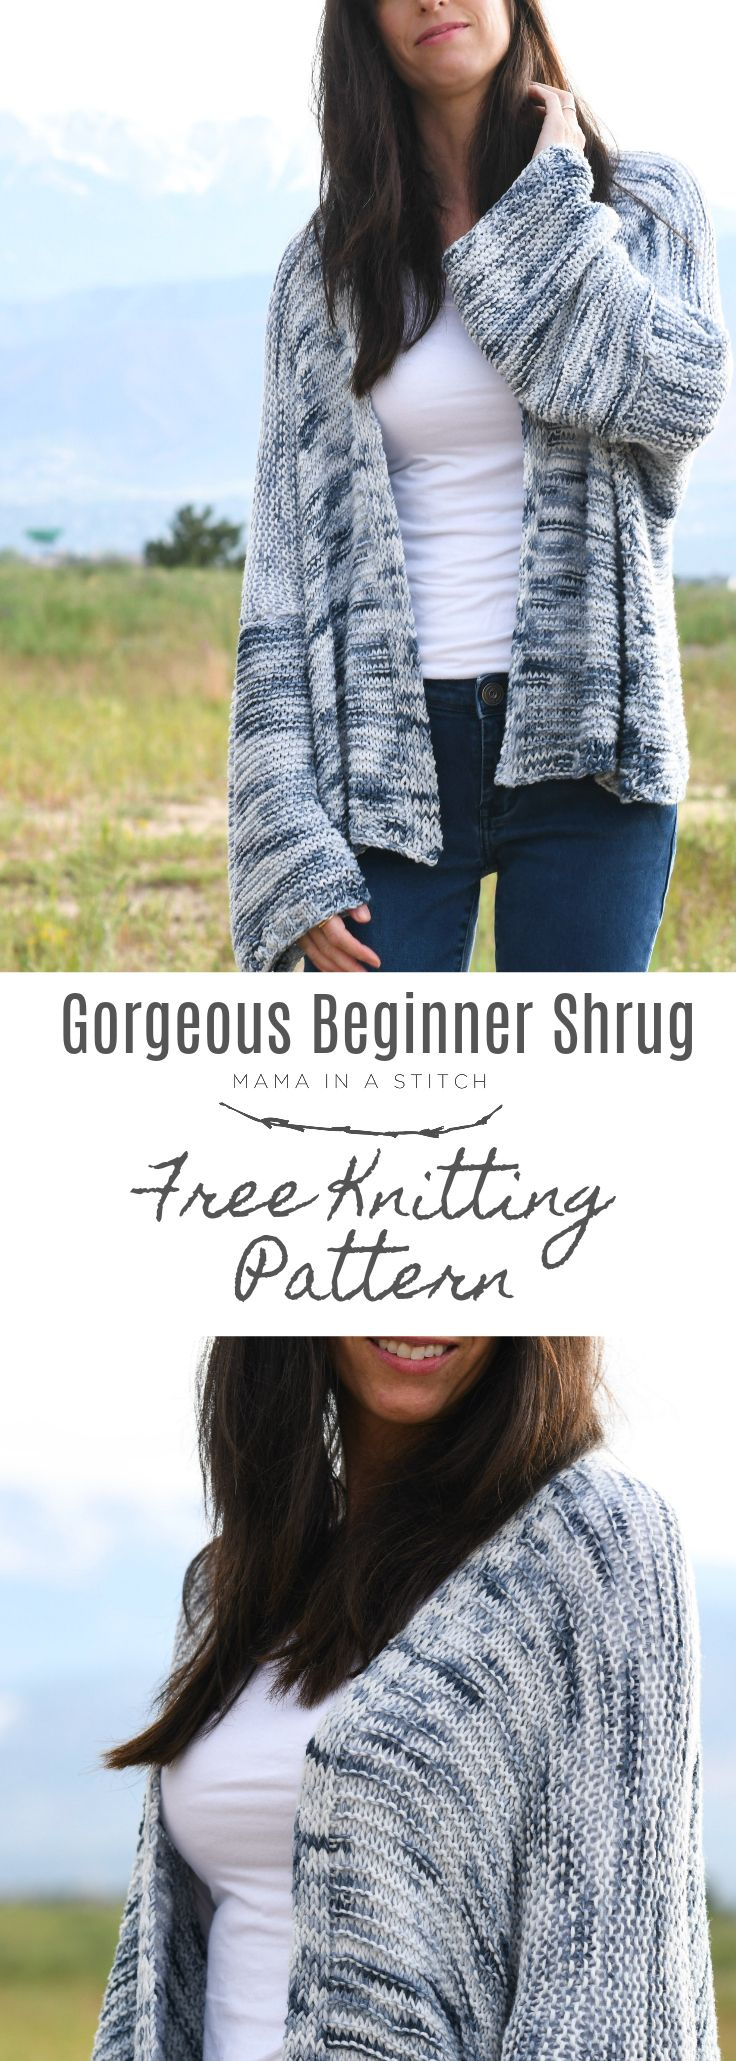 Painted Sky Comfy Shrug – Beginner Sweater Pattern #freeknittingpatterns